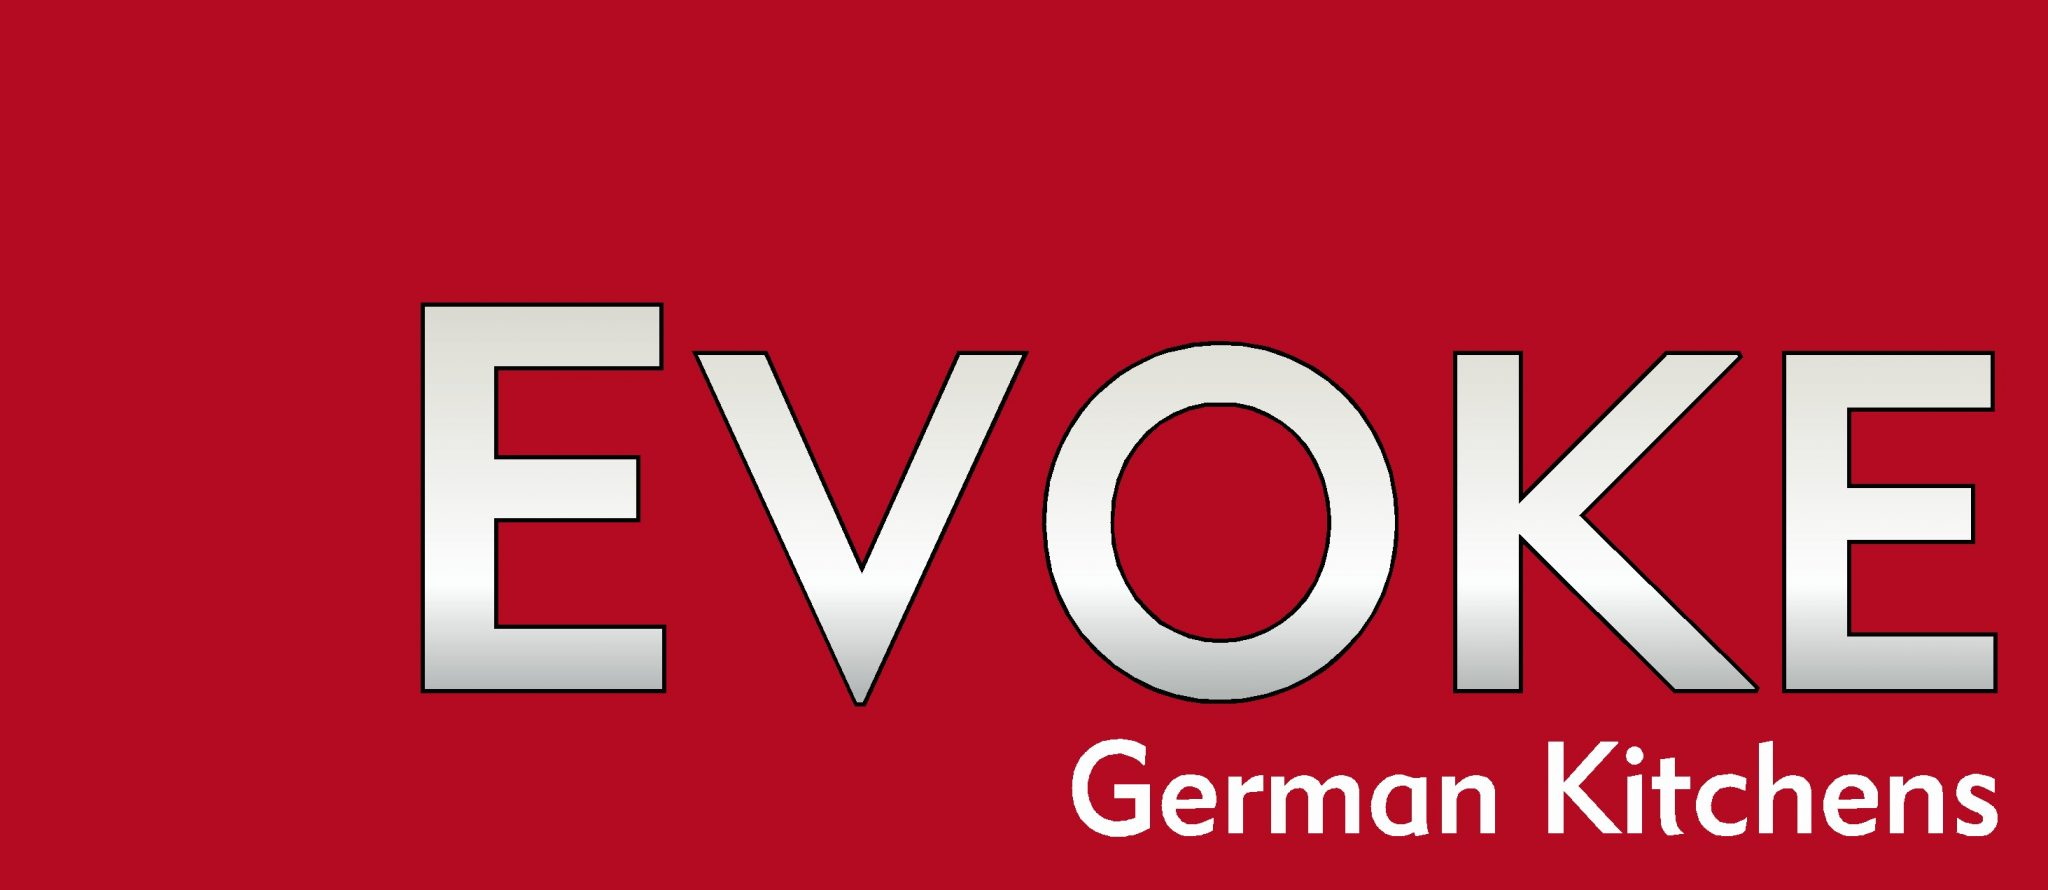 Evoke Logo High Res jpeg (1)